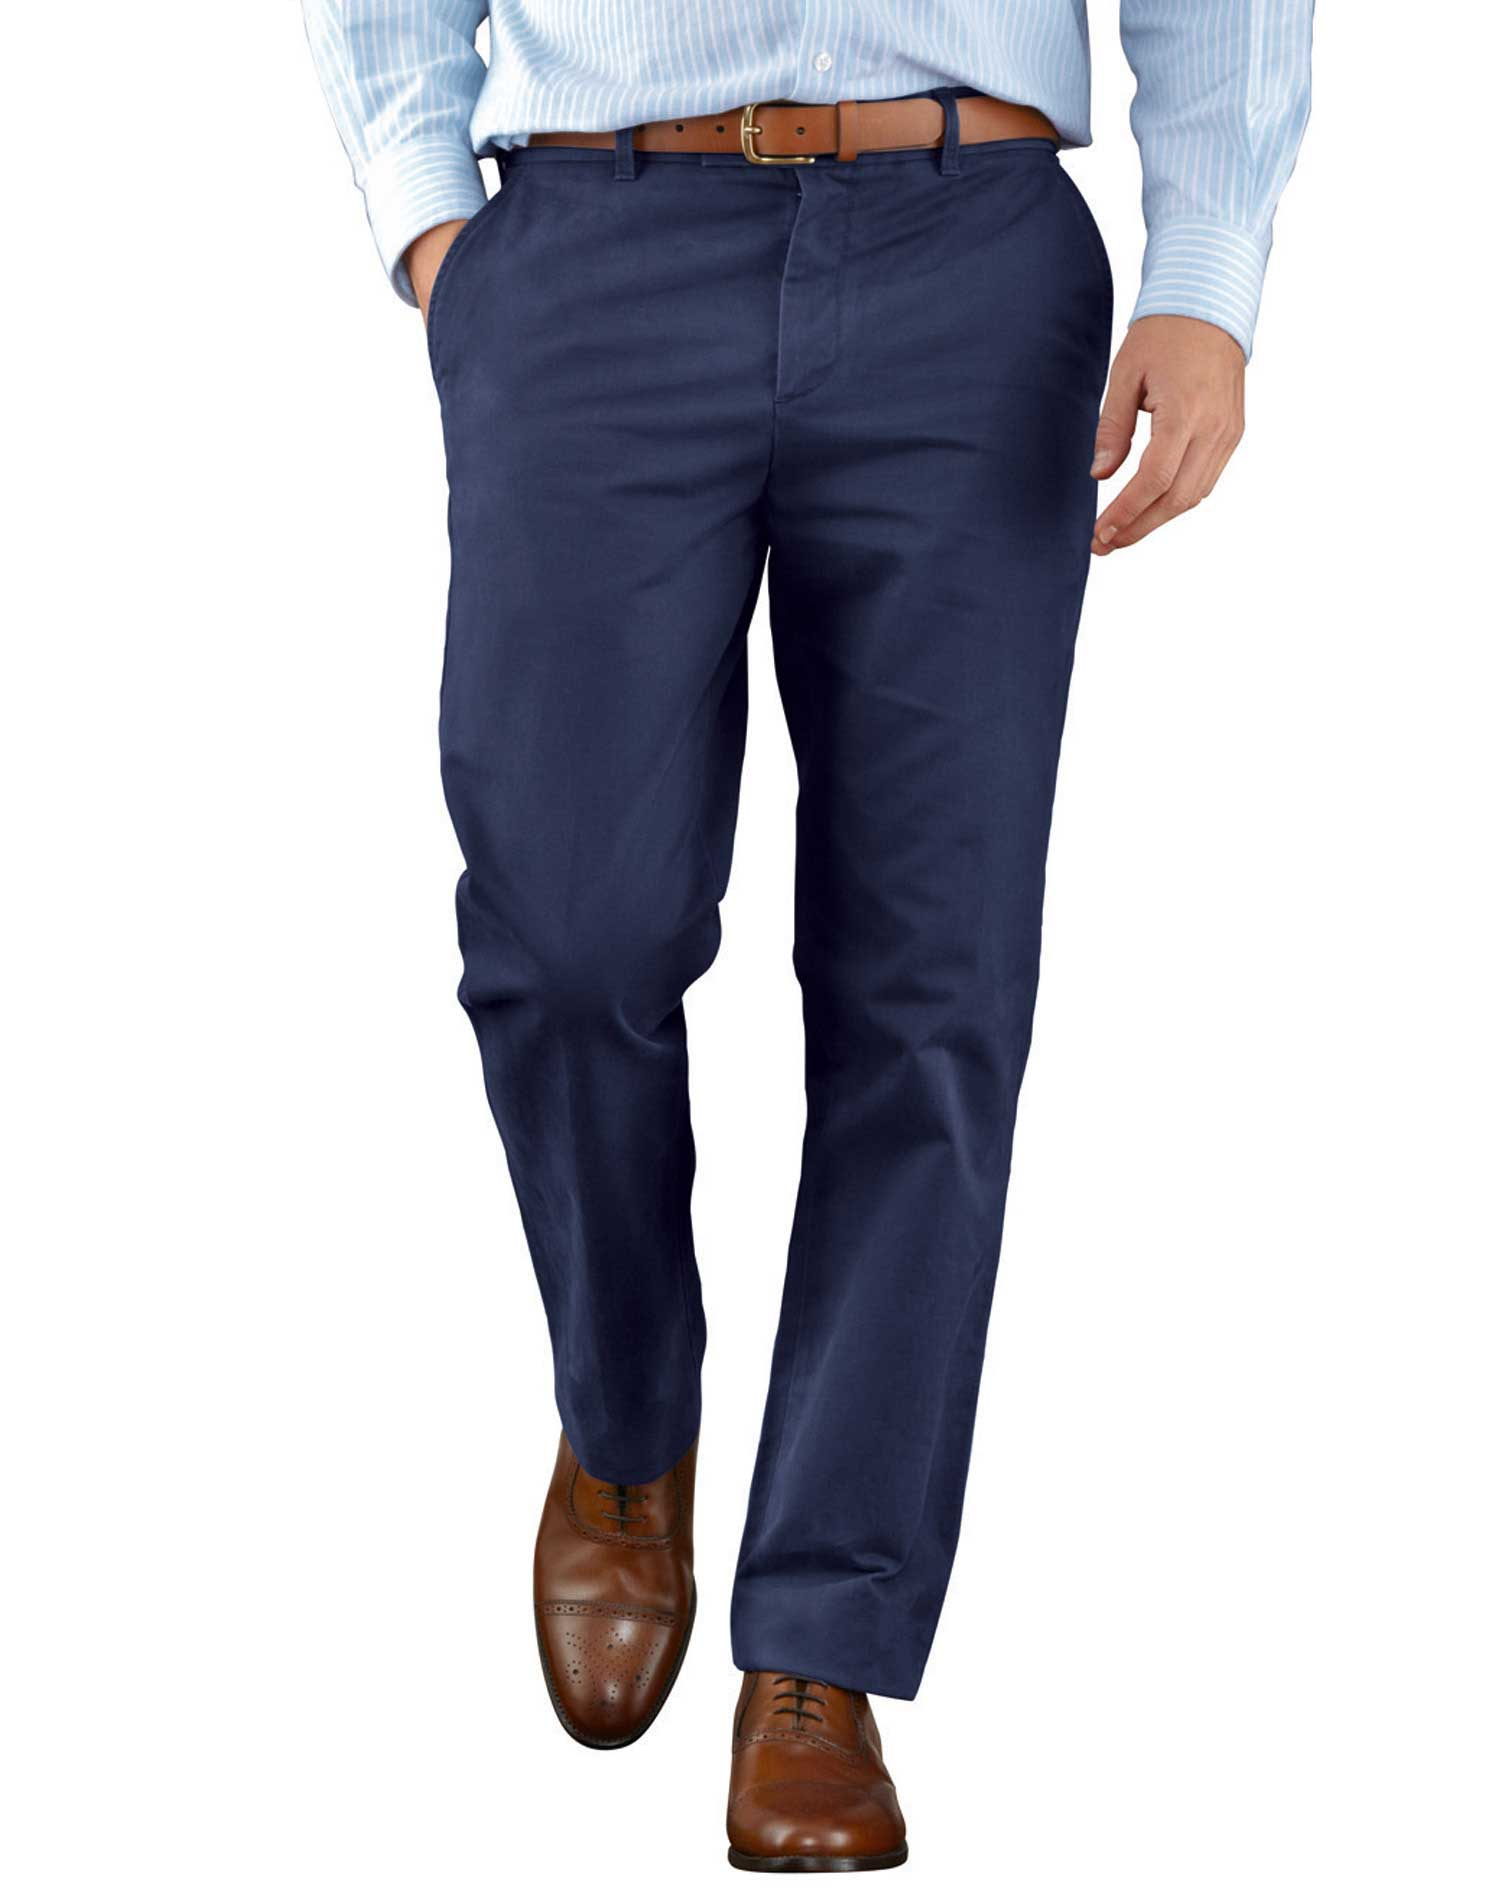 Blue Slim Fit Flat Front Weekend Cotton Chino Trousers Size W32 L30 by Charles Tyrwhitt